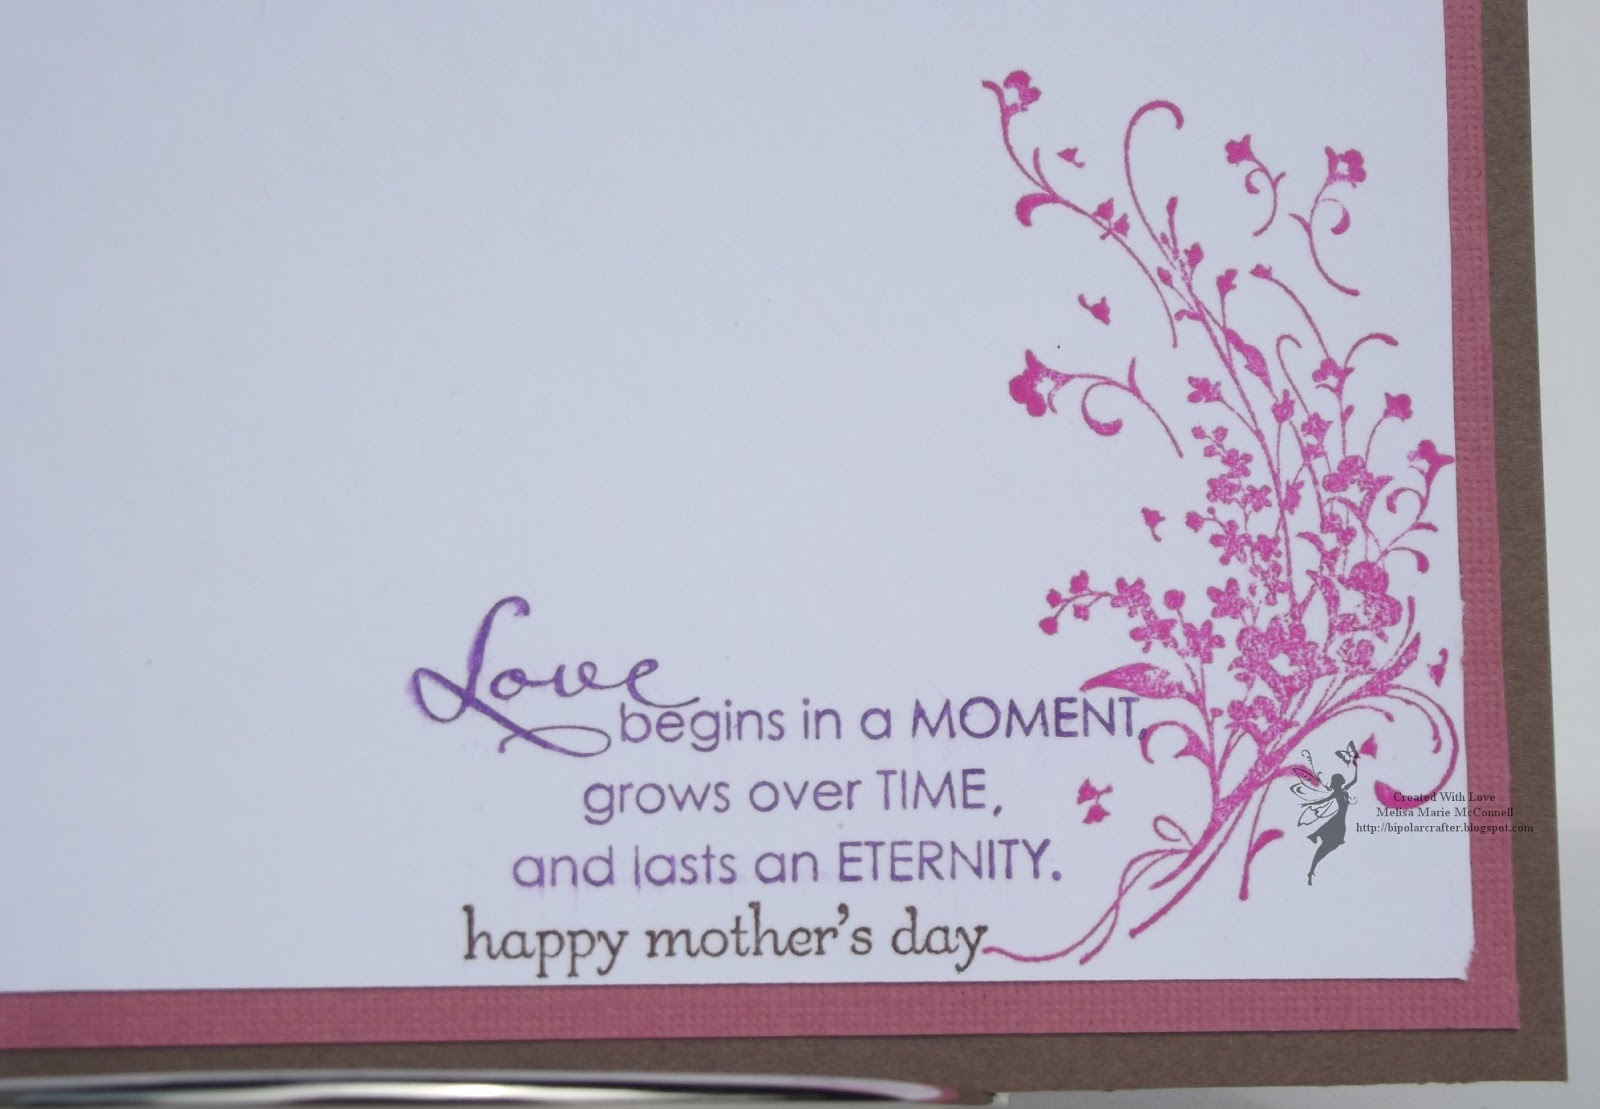 Bipolar crafter mother 39 s day cards set 1 see post below for What to get grandma for mother s day